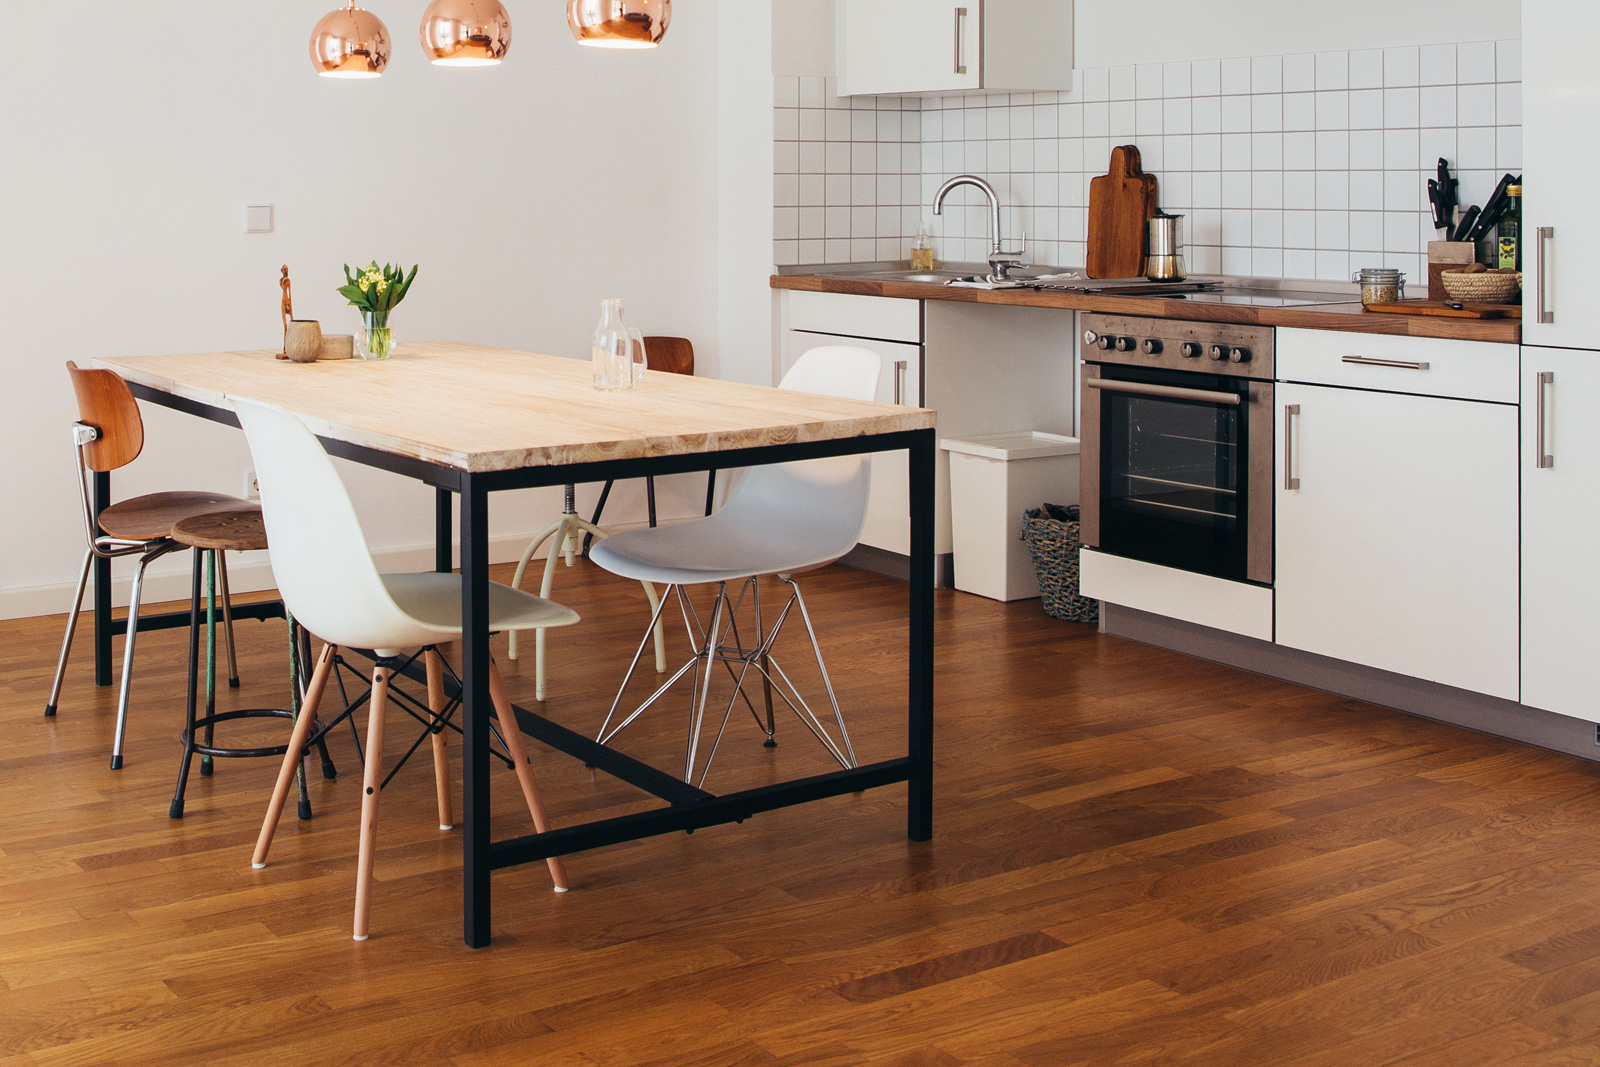 The Best Flooring Options for Kitchens & Kitchen Flooring Ideas | HouseLogic